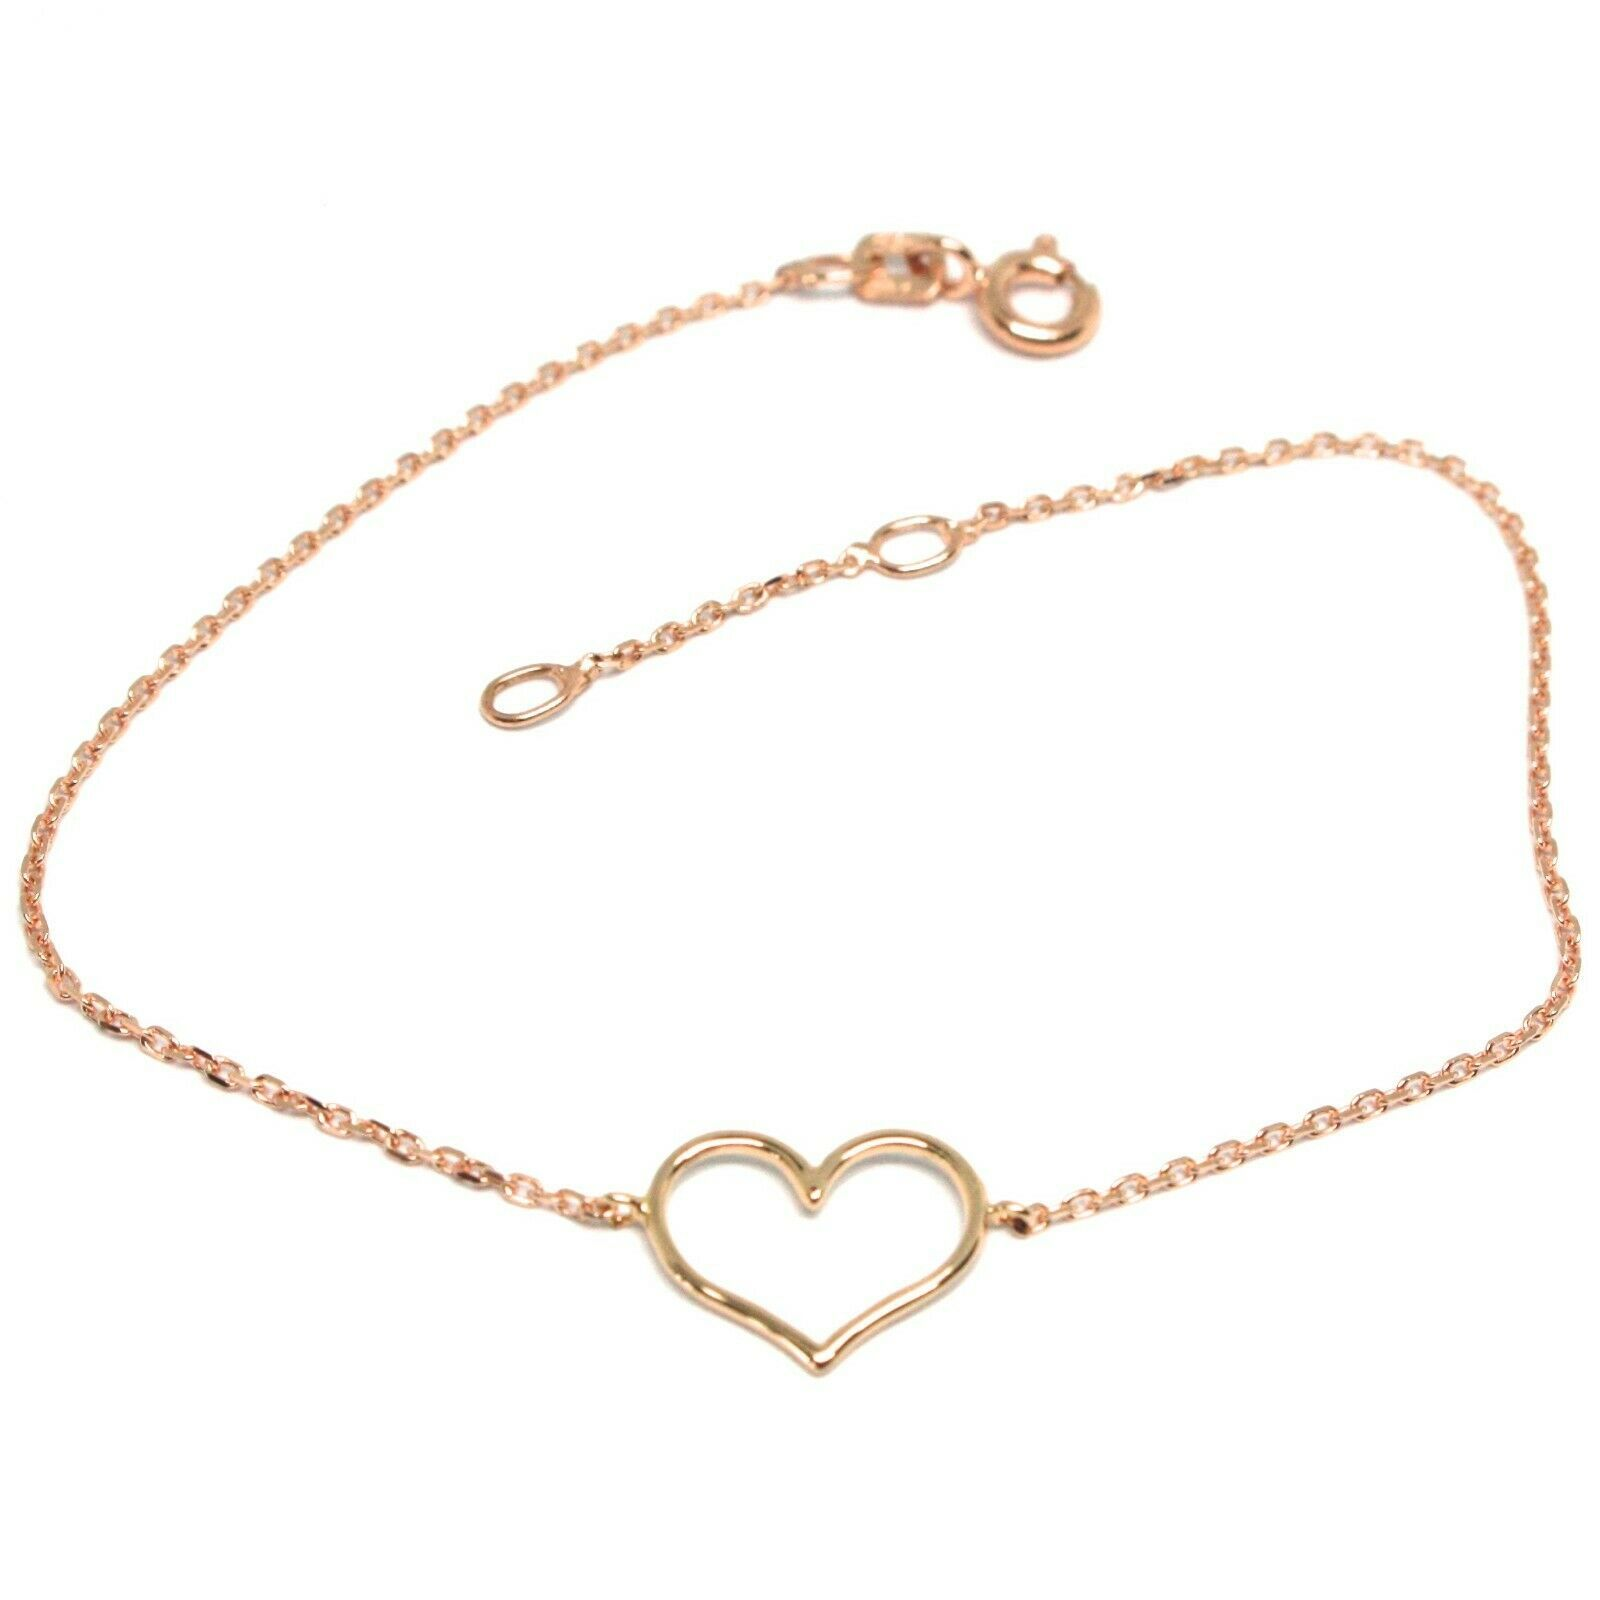 18K ROSE GOLD SQUARE ROLO MINI BRACELET, 7.1 INCHES, OPENWORK HEART, ITALY MADE